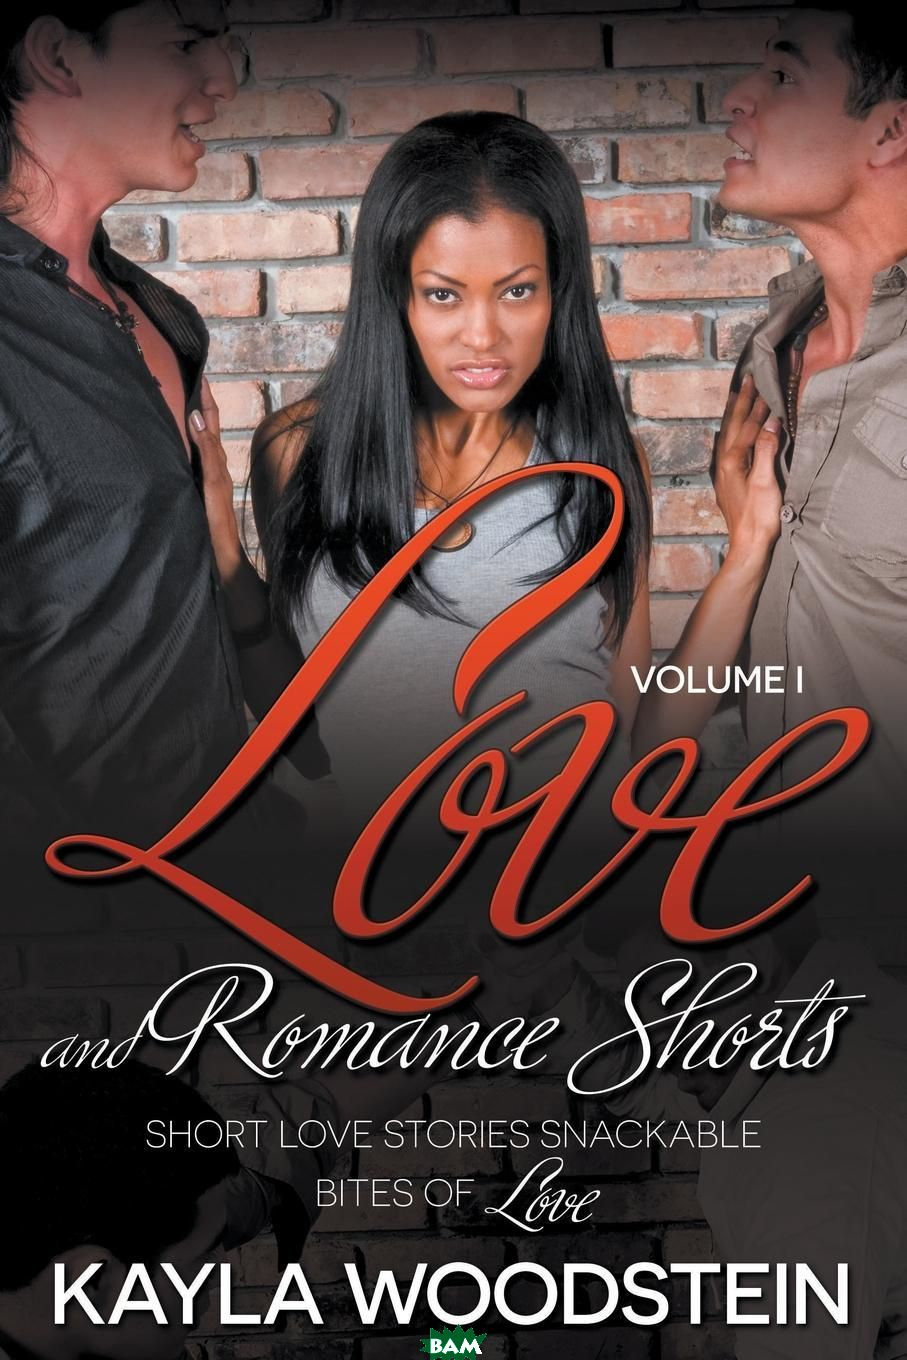 Купить Love And Romance Shorts Volume I. Short Love Stories Snackable Bites of Love, Kayla Woodstein, 9781635010183